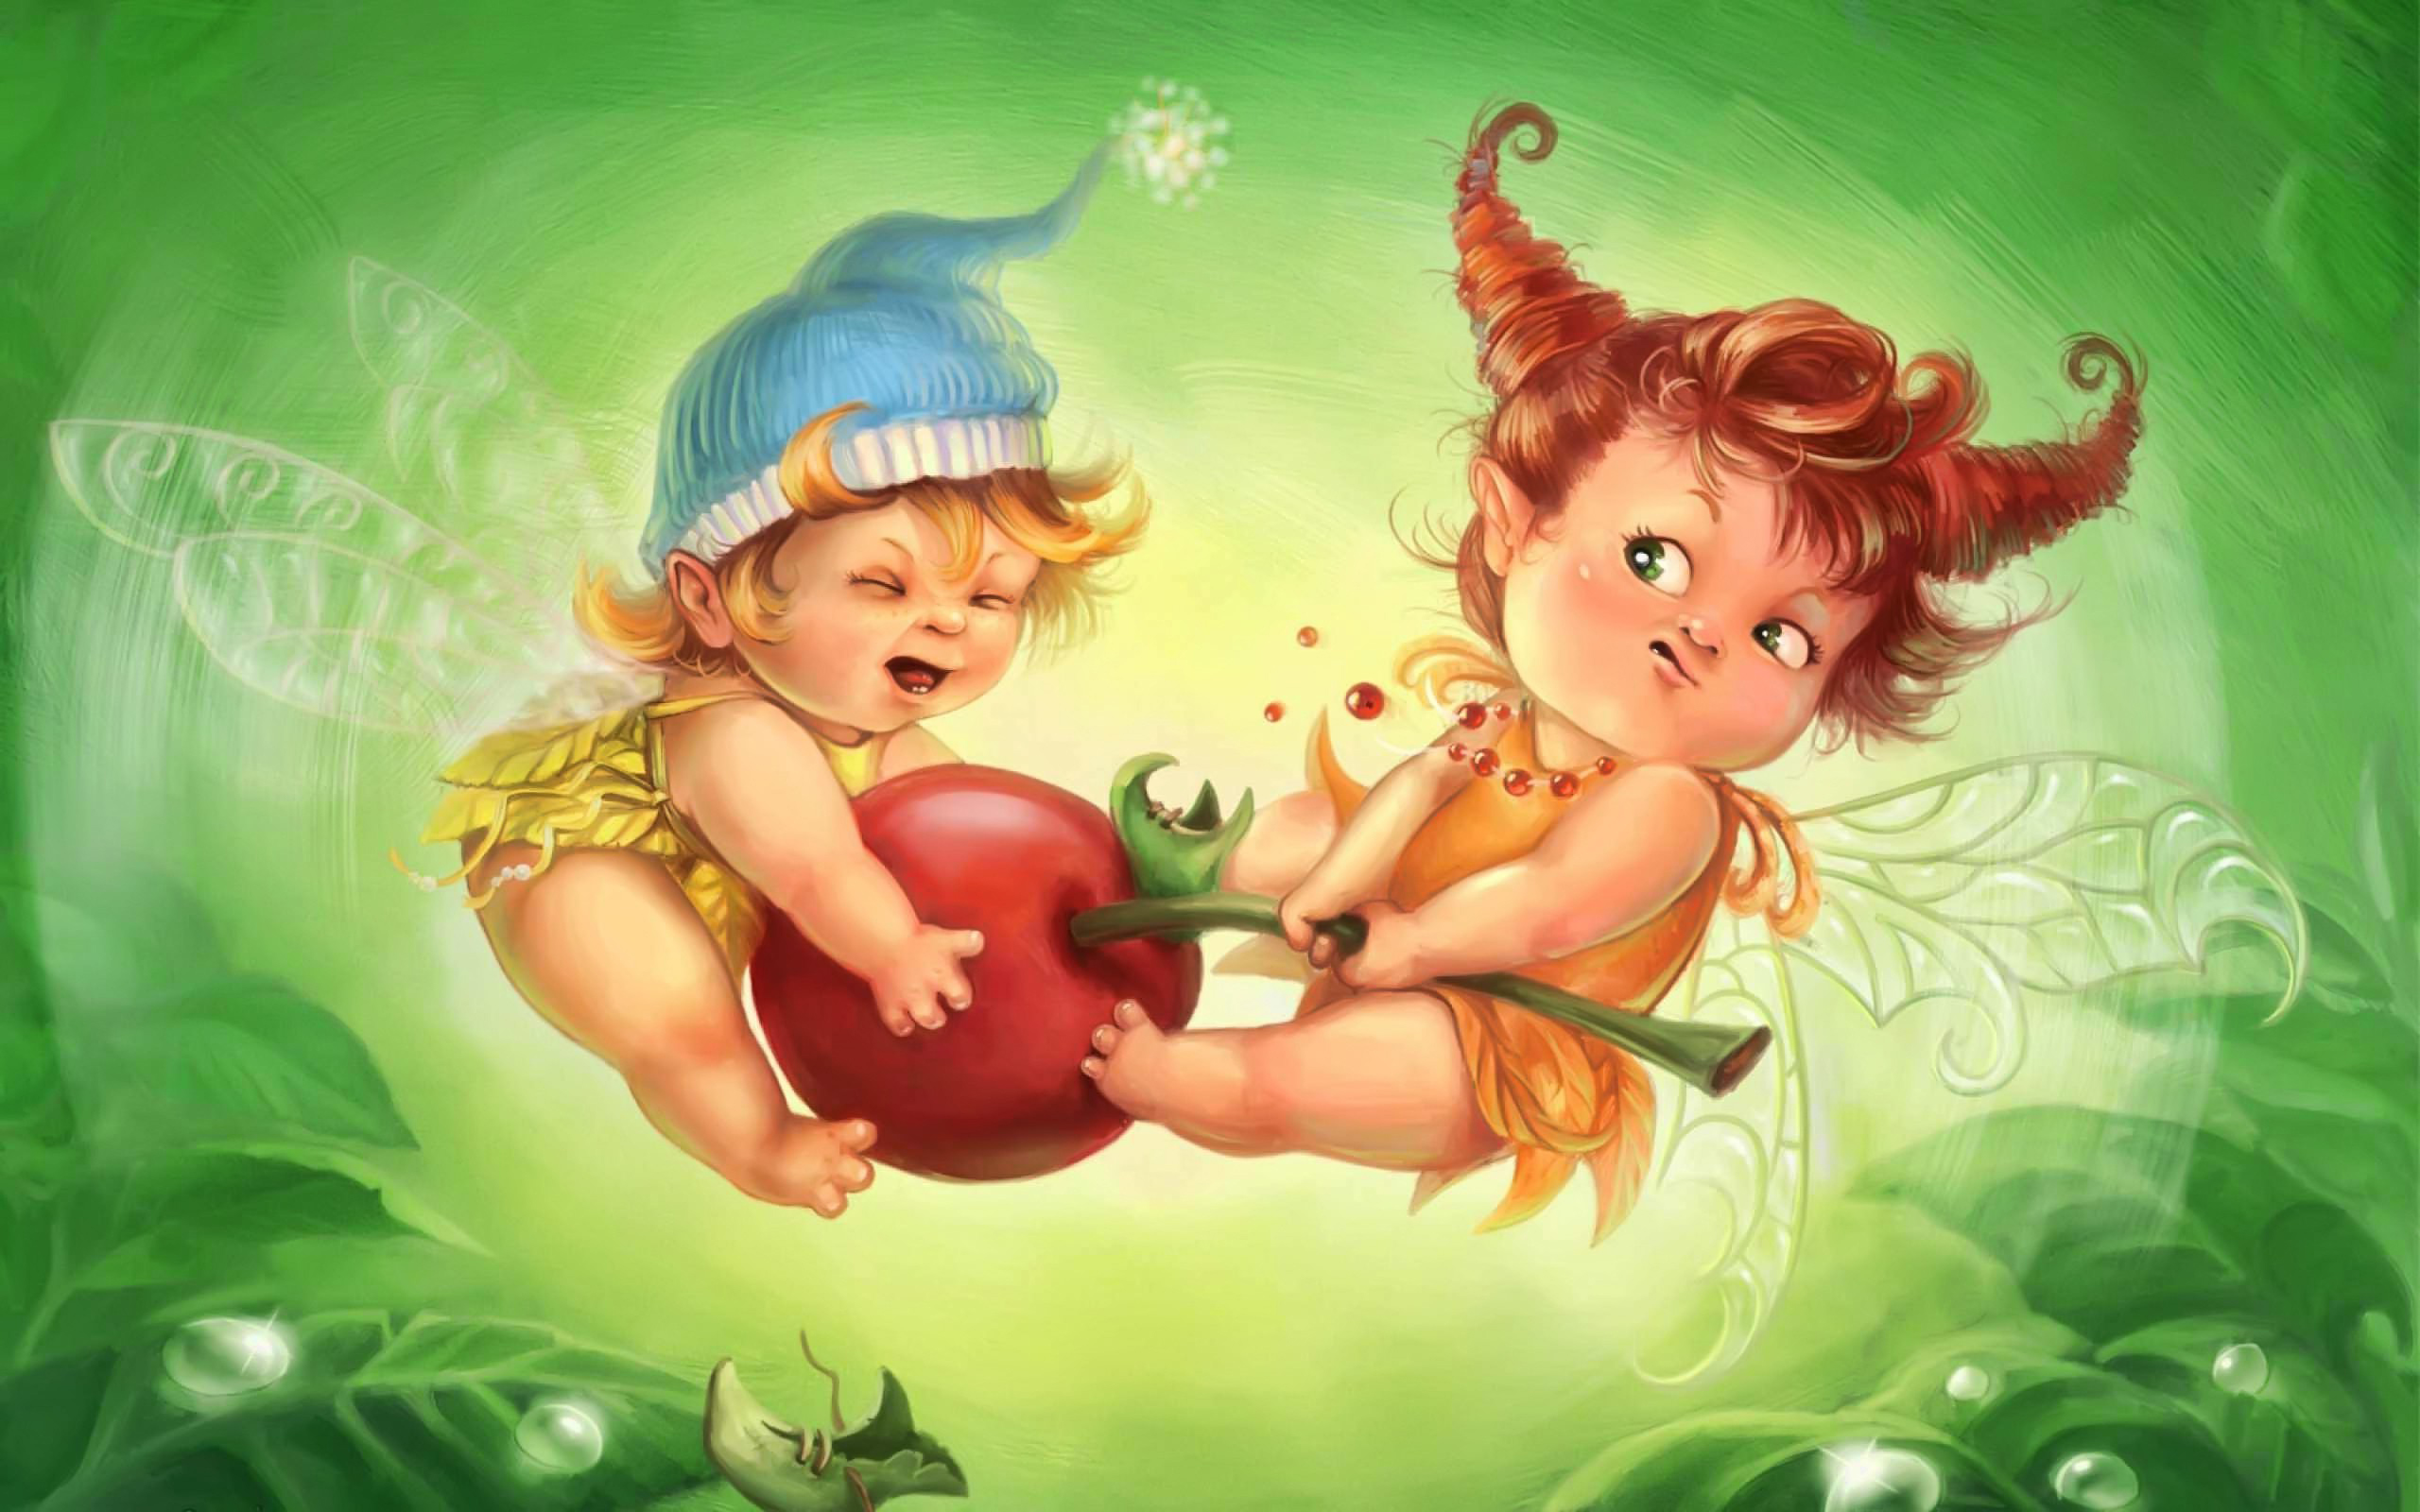 Description Download Cute baby angels Wallpaper in 2560x1600 2560x1600